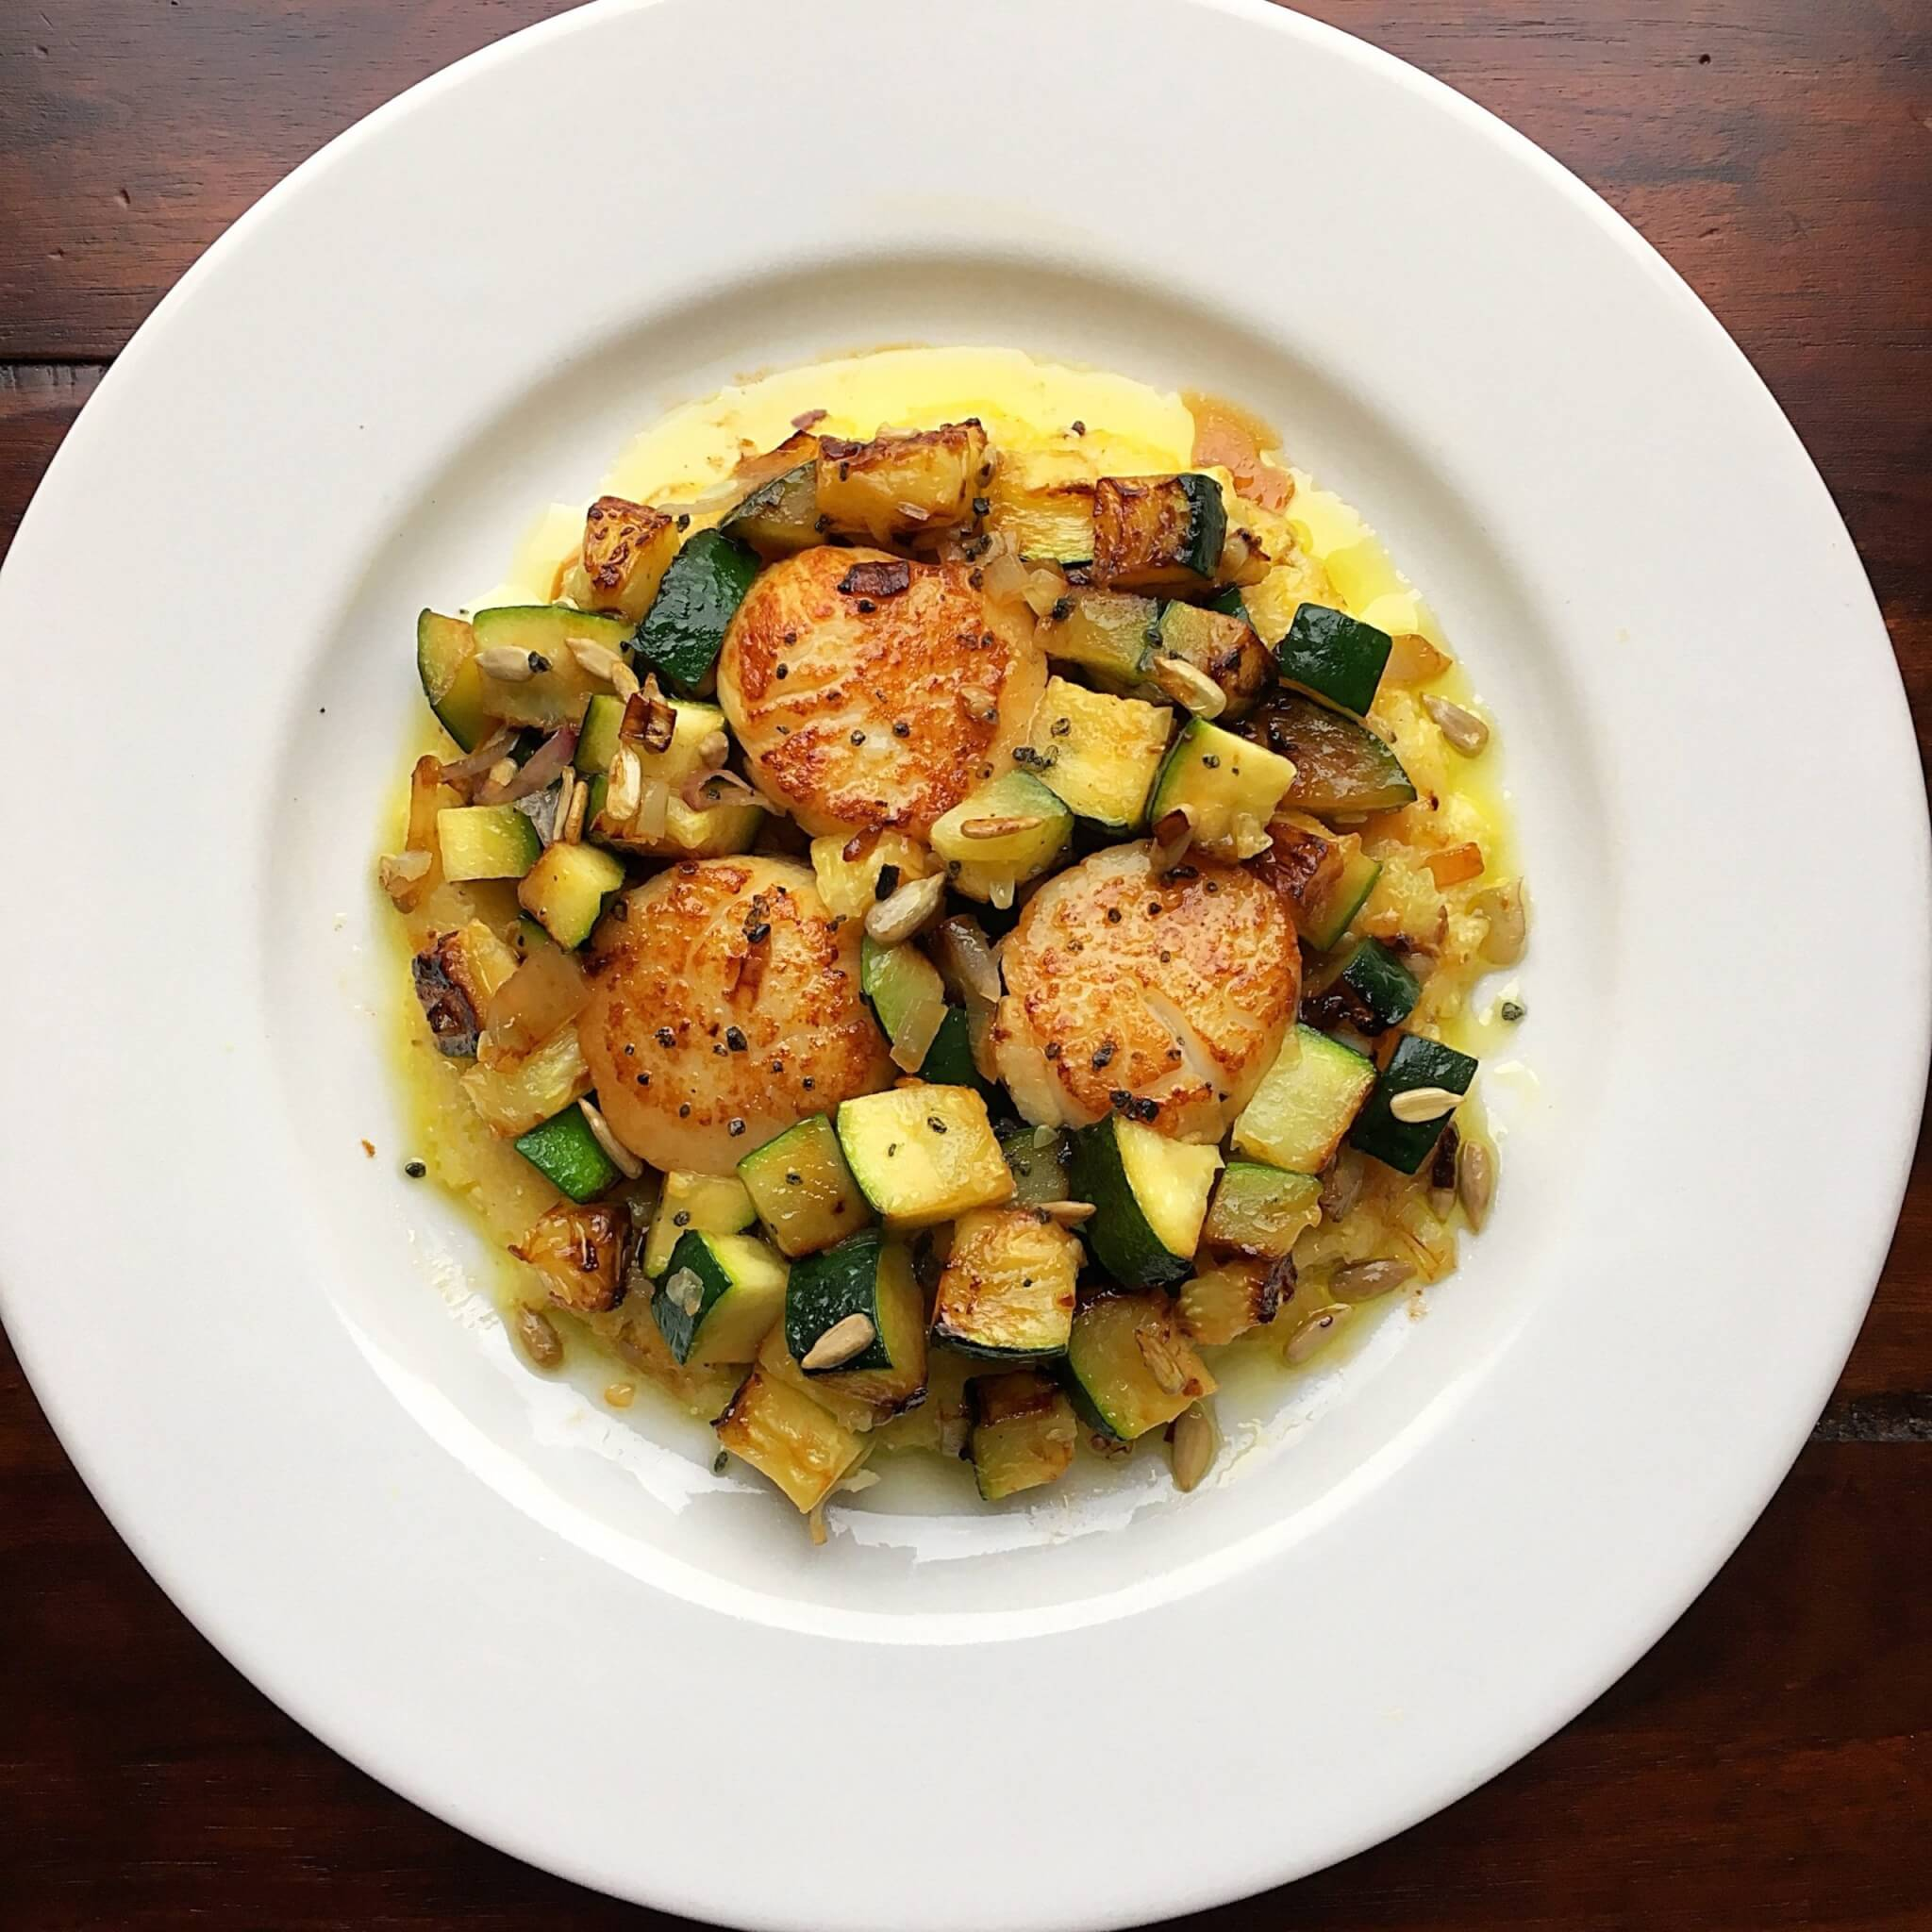 Scallops and Zucchini Dinner Plate